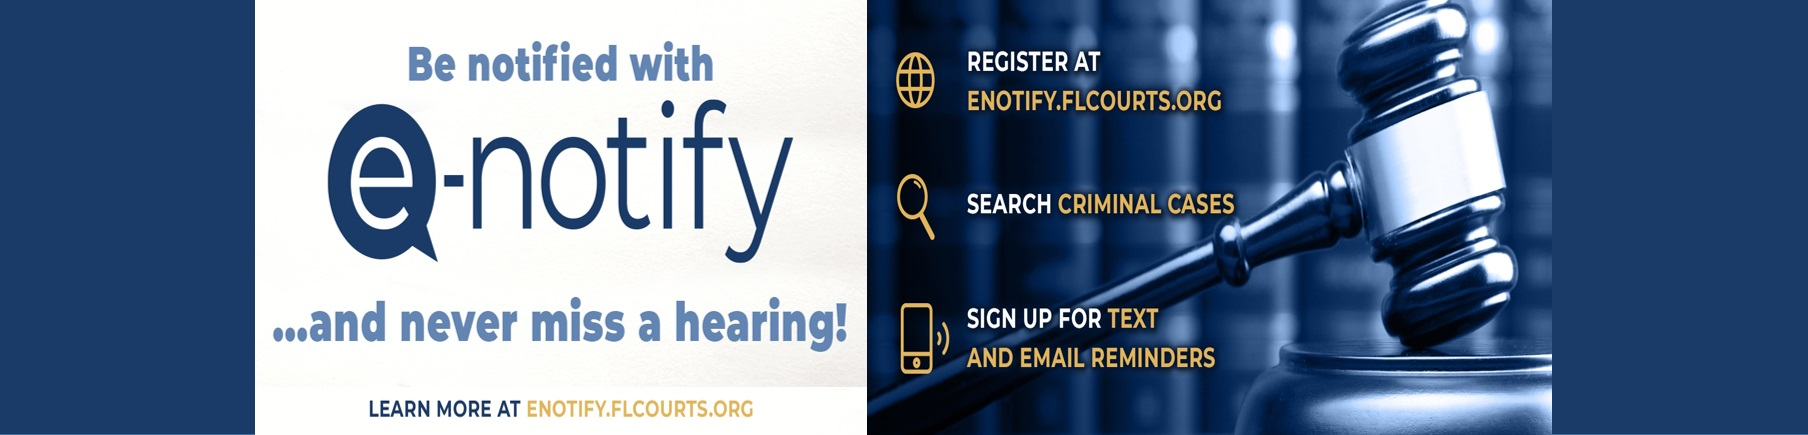 Be notified with eNotify and never miss a hearing. Learn more at eNotify.FLCourts.org.